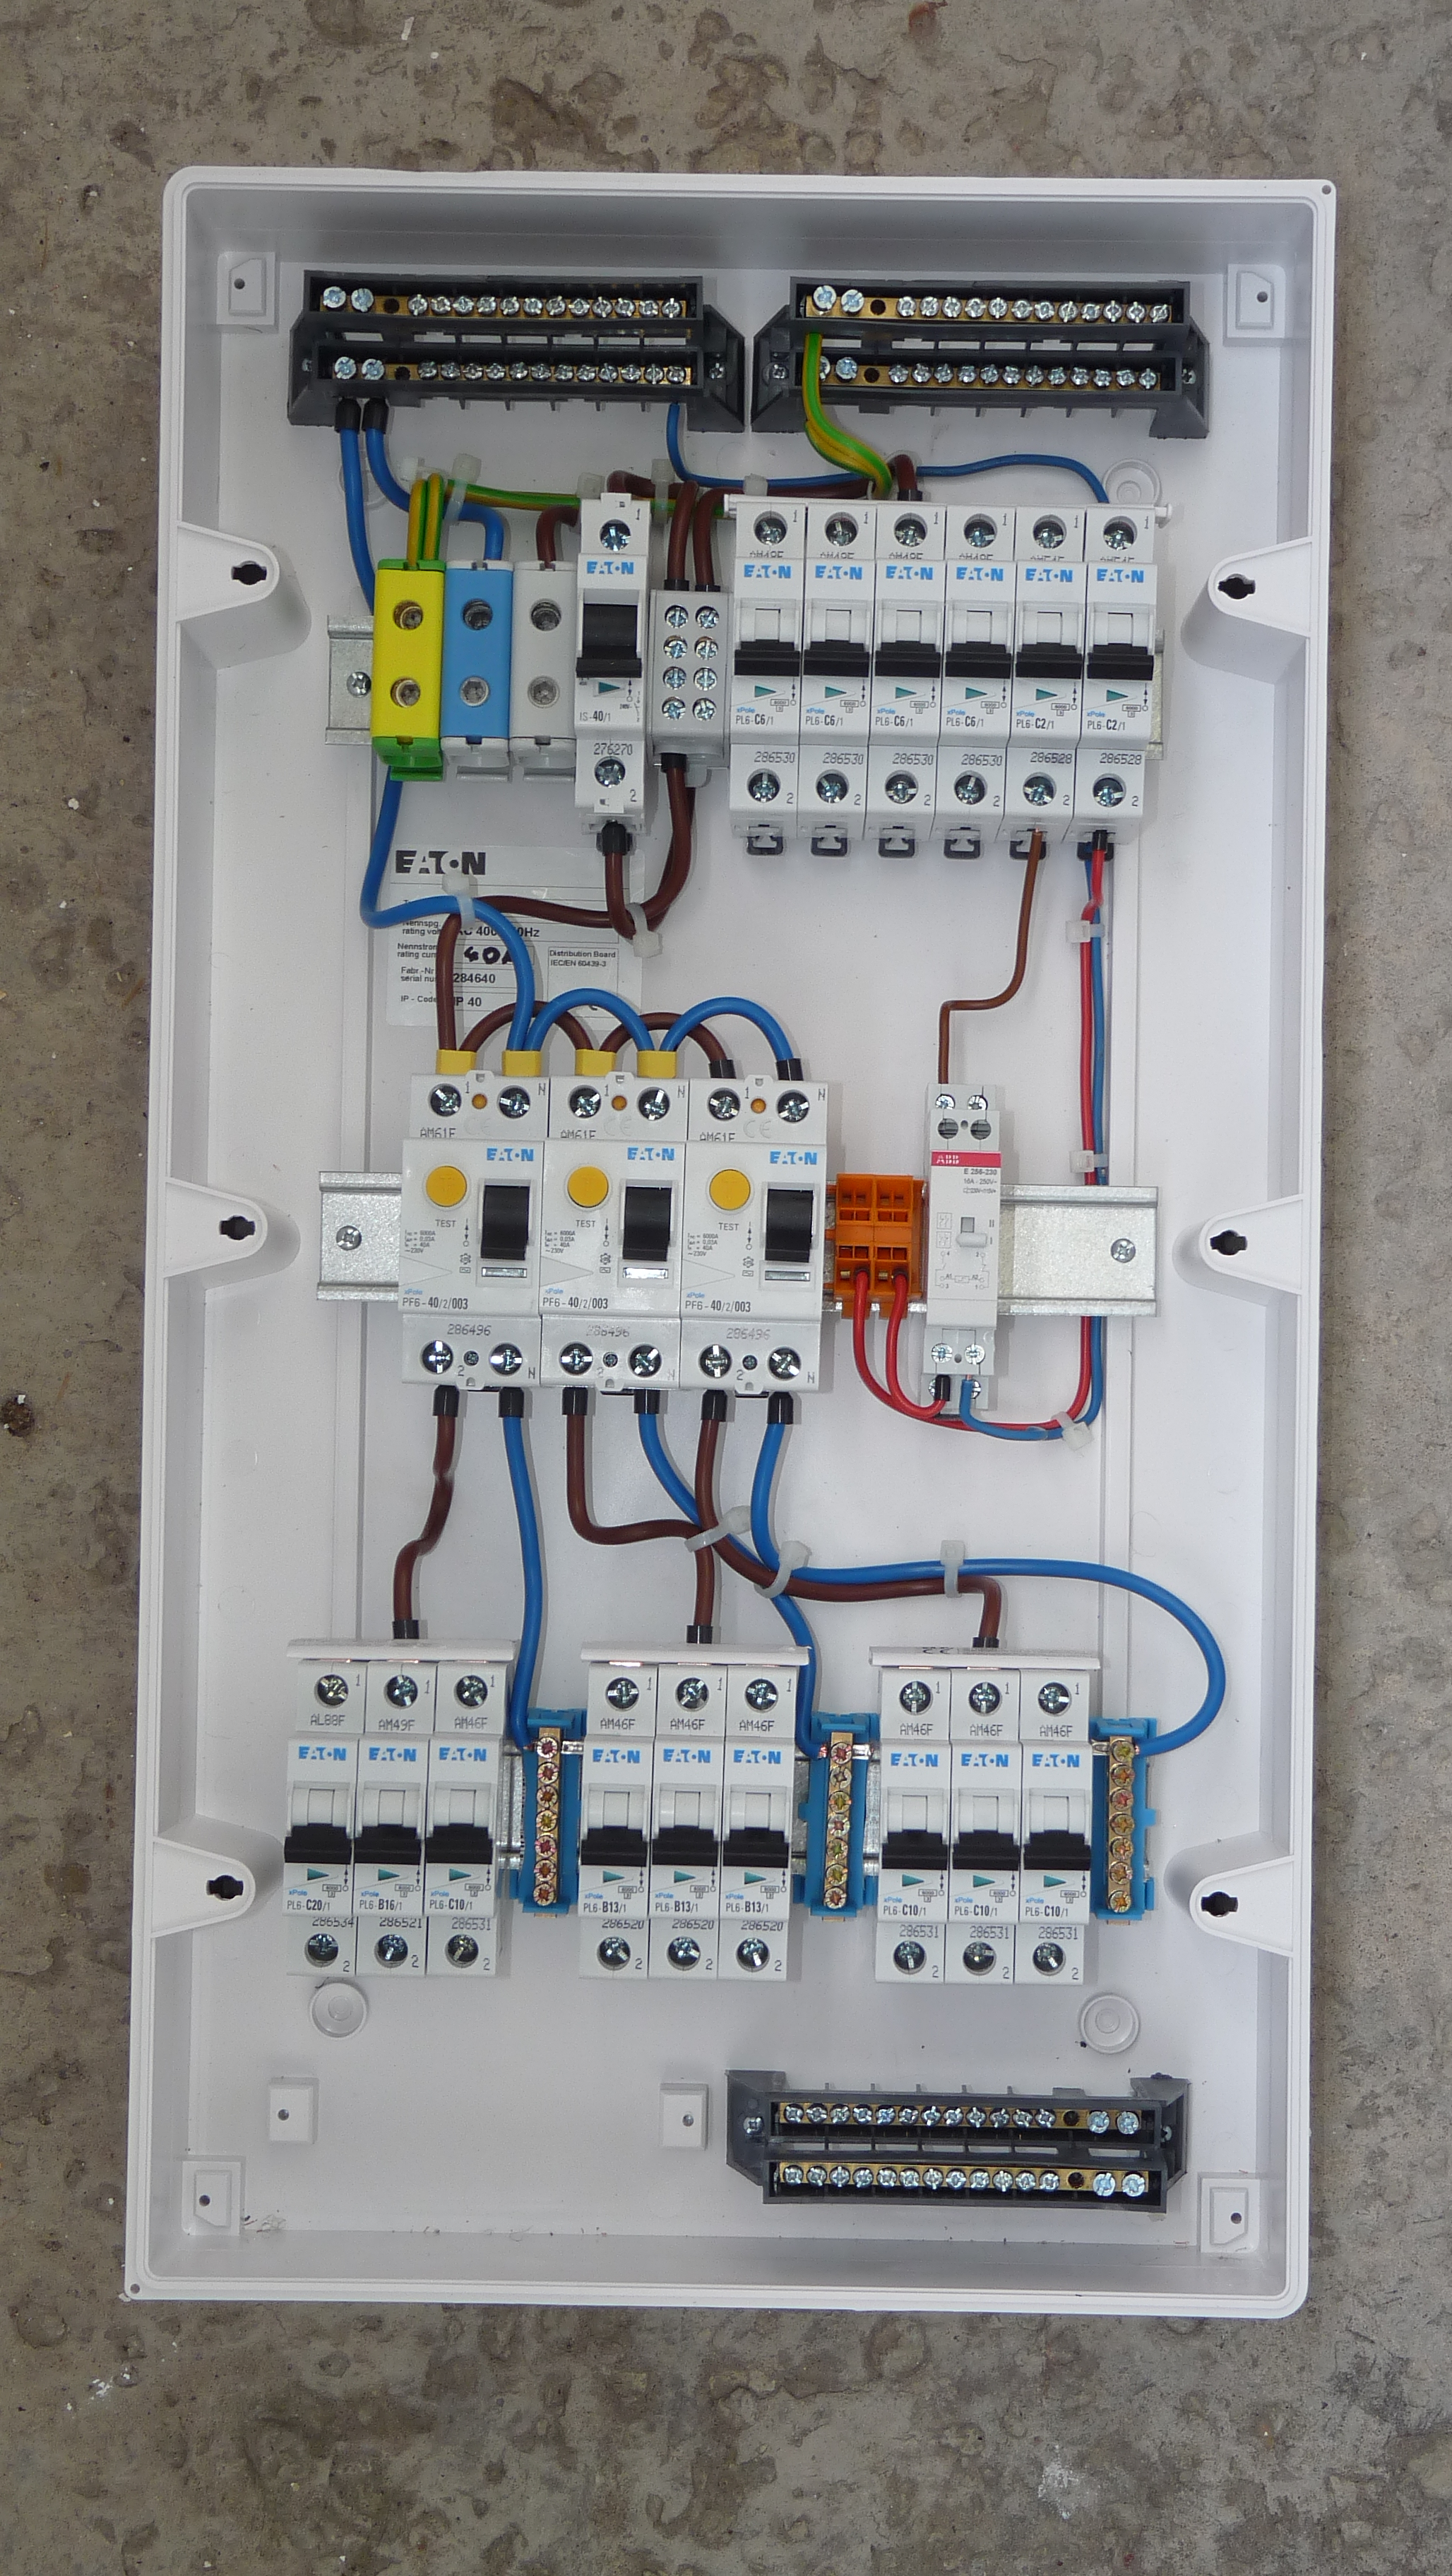 Fuse Box Wiring Building A Diagram 620i File Paekaare 24 Of Apartment Electricity